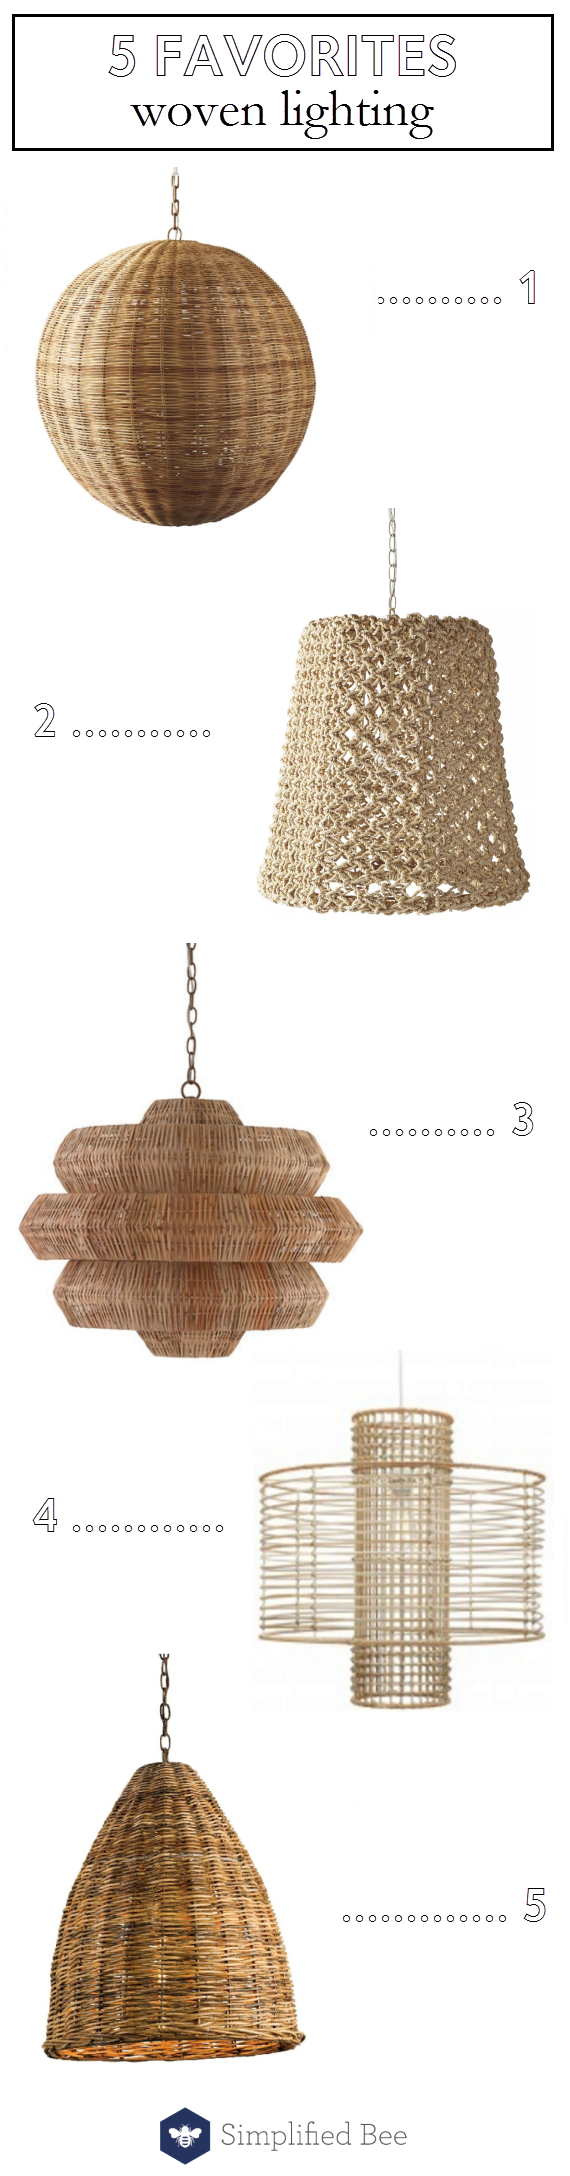 woven pendant lighting // @simplifiedbee #lighting